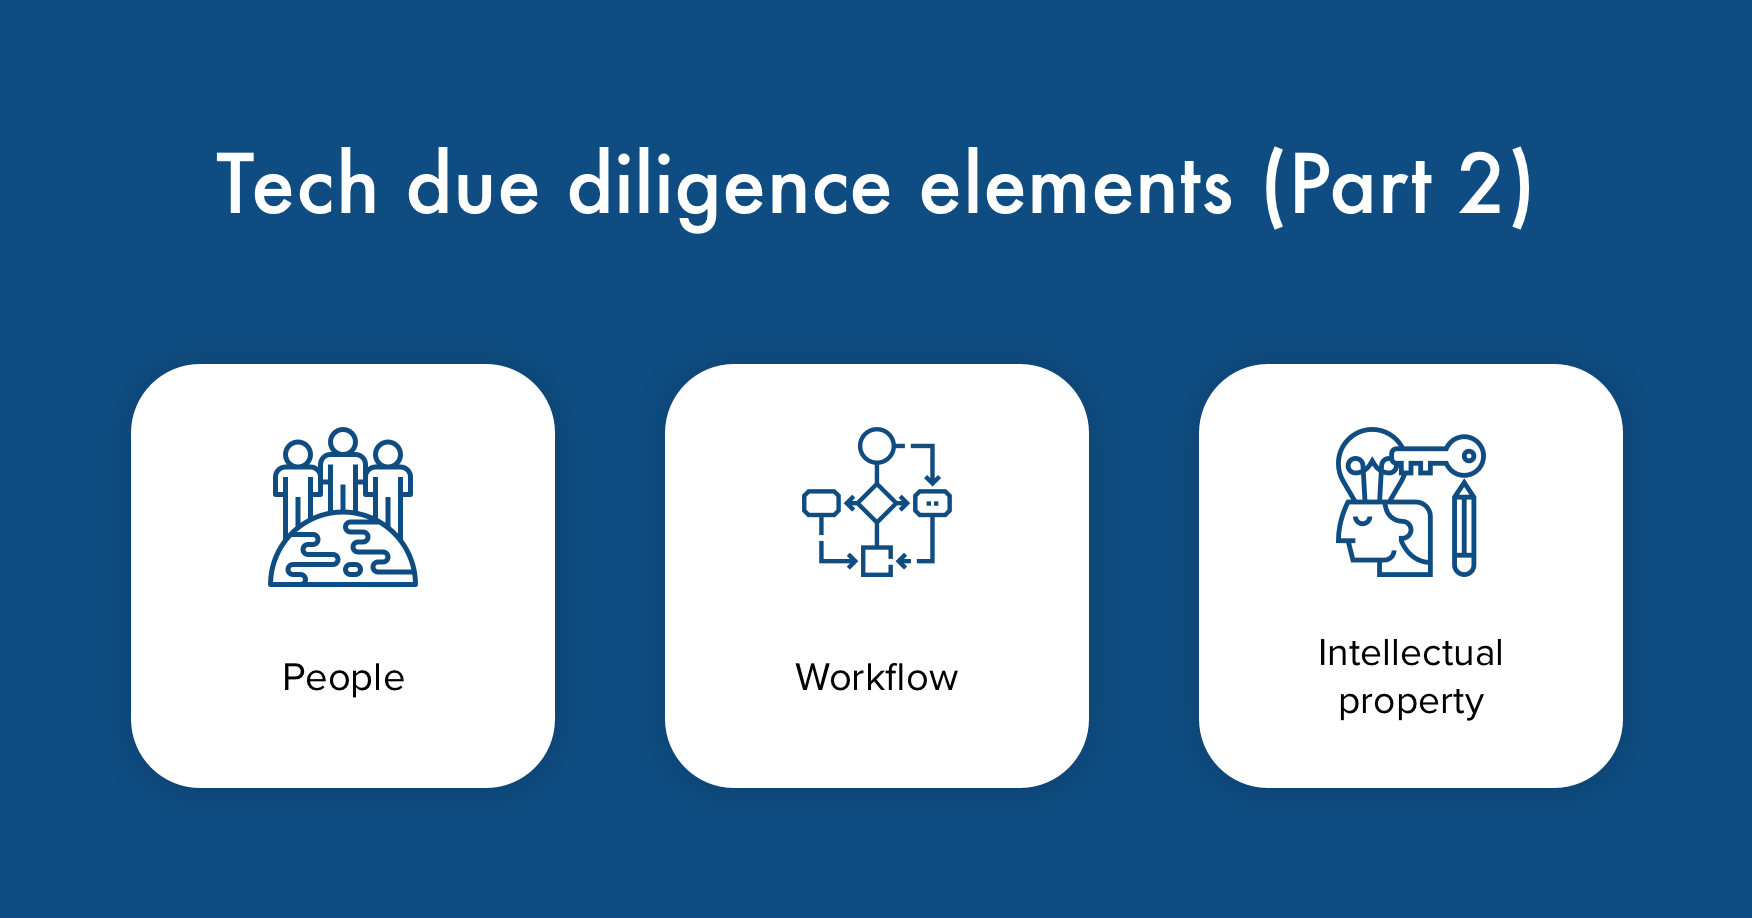 Technical due diligence elements (Part 2)